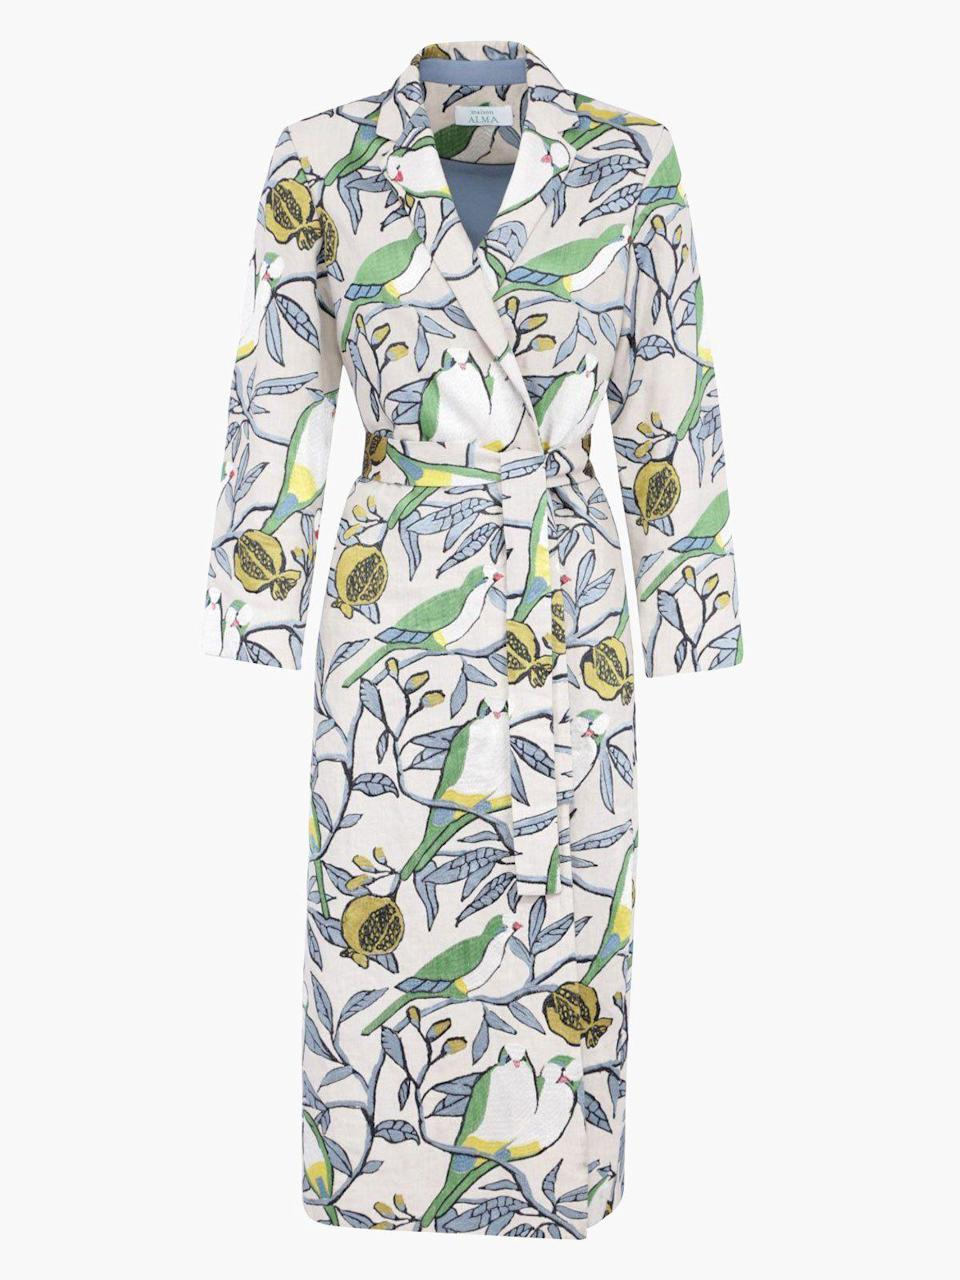 """<p><strong>Maison Alma</strong></p><p>fashionkind.com</p><p><strong>$2700.00</strong></p><p><a href=""""https://fashionkind.com/collections/maison-alma/products/maison-alma-kimono-dos-loros?variant=31897591054379"""" rel=""""nofollow noopener"""" target=""""_blank"""" data-ylk=""""slk:Shop Now"""" class=""""link rapid-noclick-resp"""">Shop Now</a></p><p>The Dos Loros Kimono is part of our classics collection, a fully embroidered statement coat which encapsulates our soul. It is a celebration of nature, exquisite craftsmanship, and timelessness.</p>"""